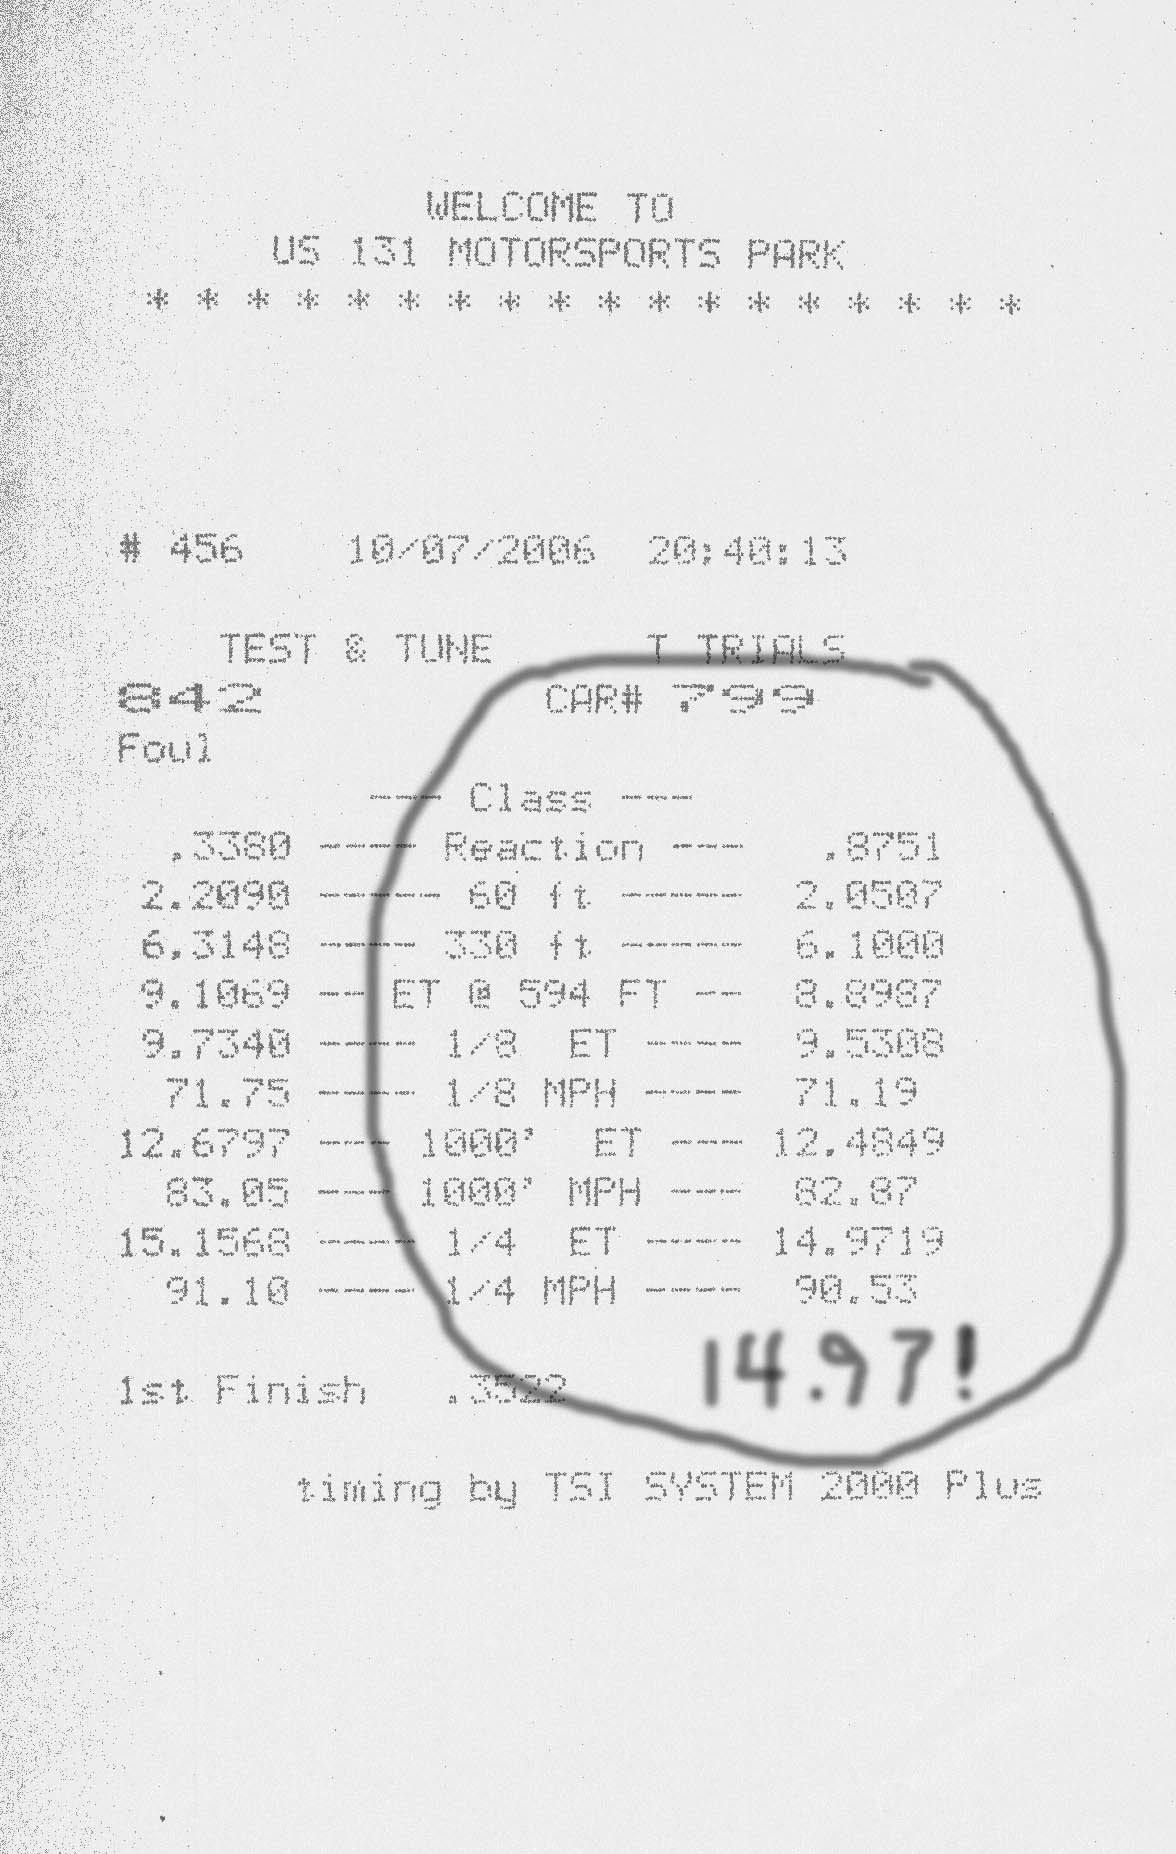 Datsun 240z Timeslip Scan